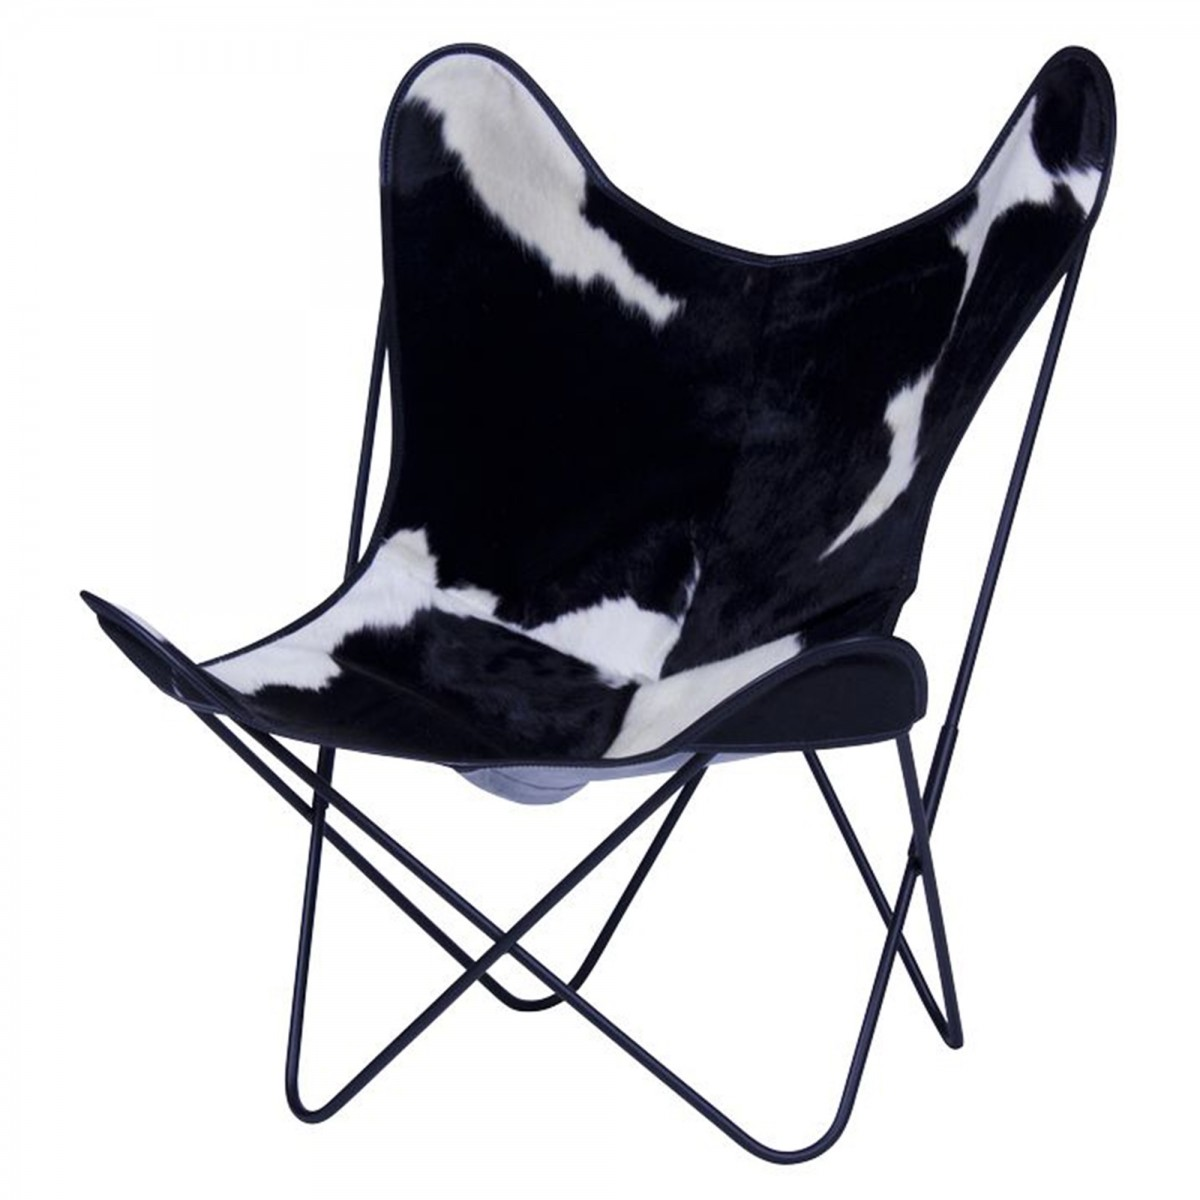 fauteuil aa butterfly en peau de vache noire blanche aa new design. Black Bedroom Furniture Sets. Home Design Ideas